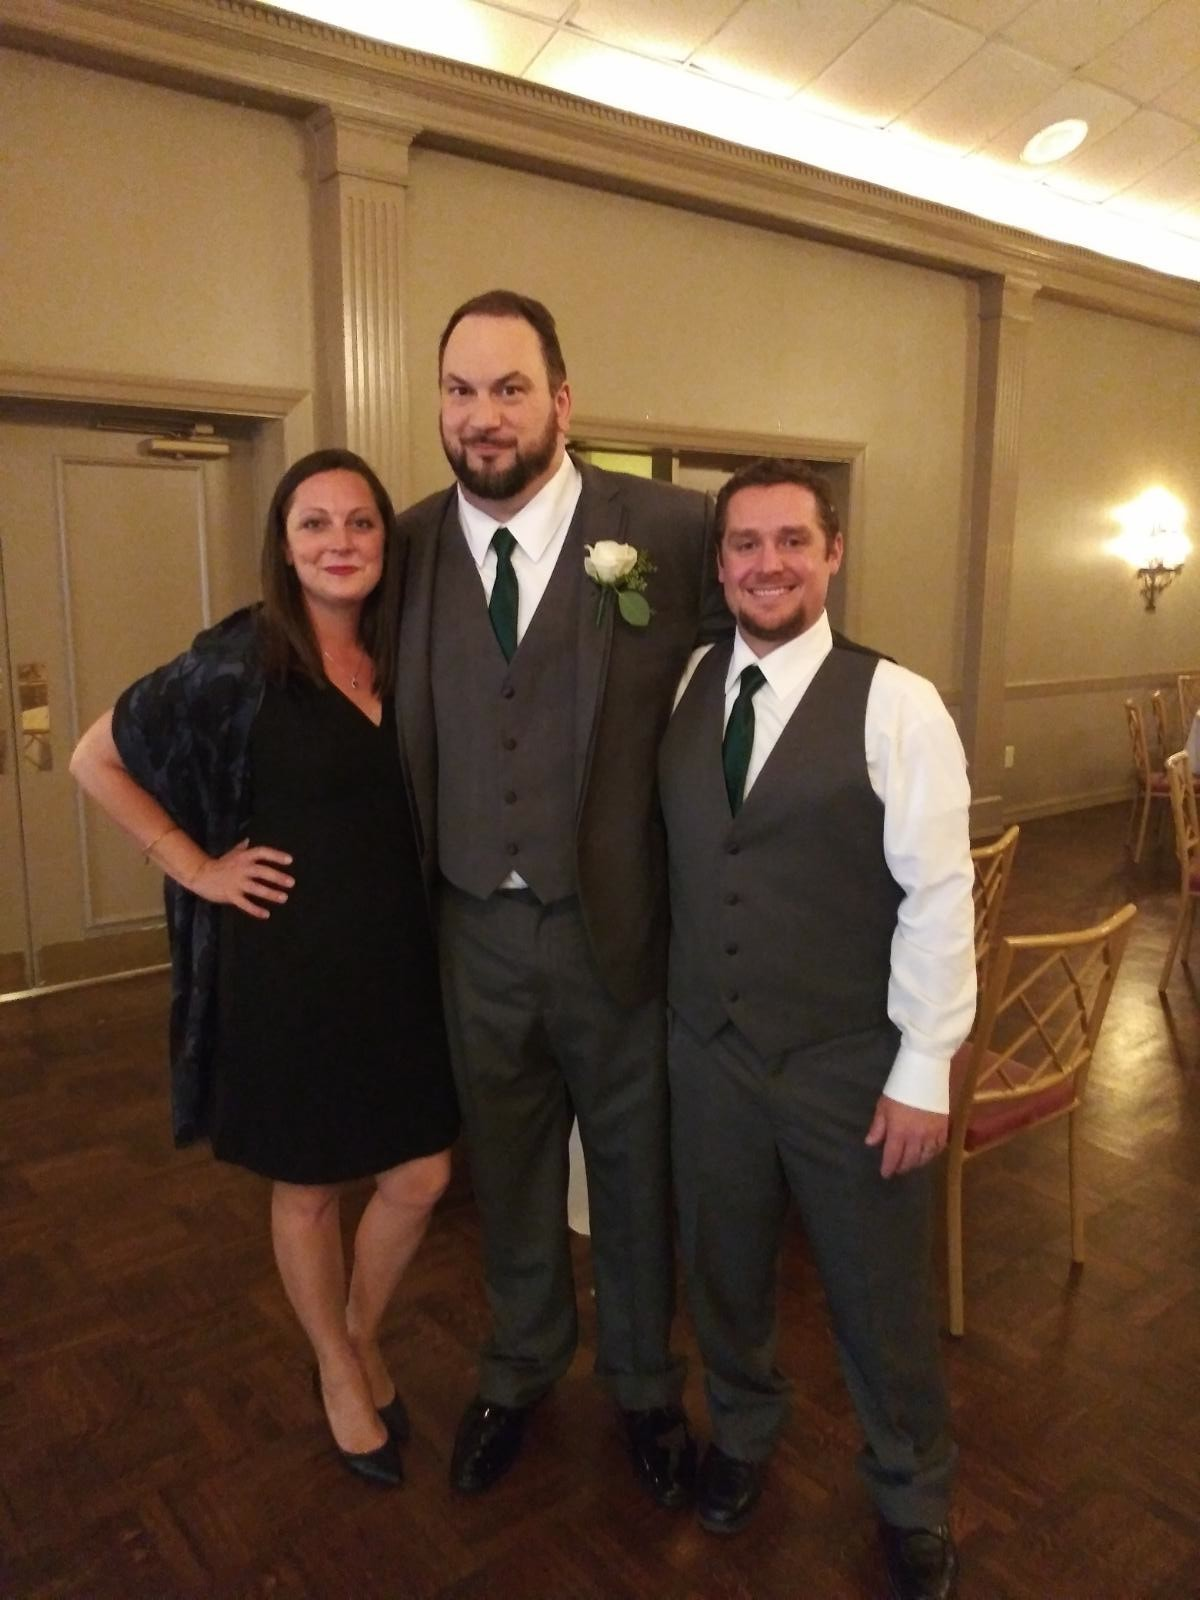 My sister and I with the groom at the reception!